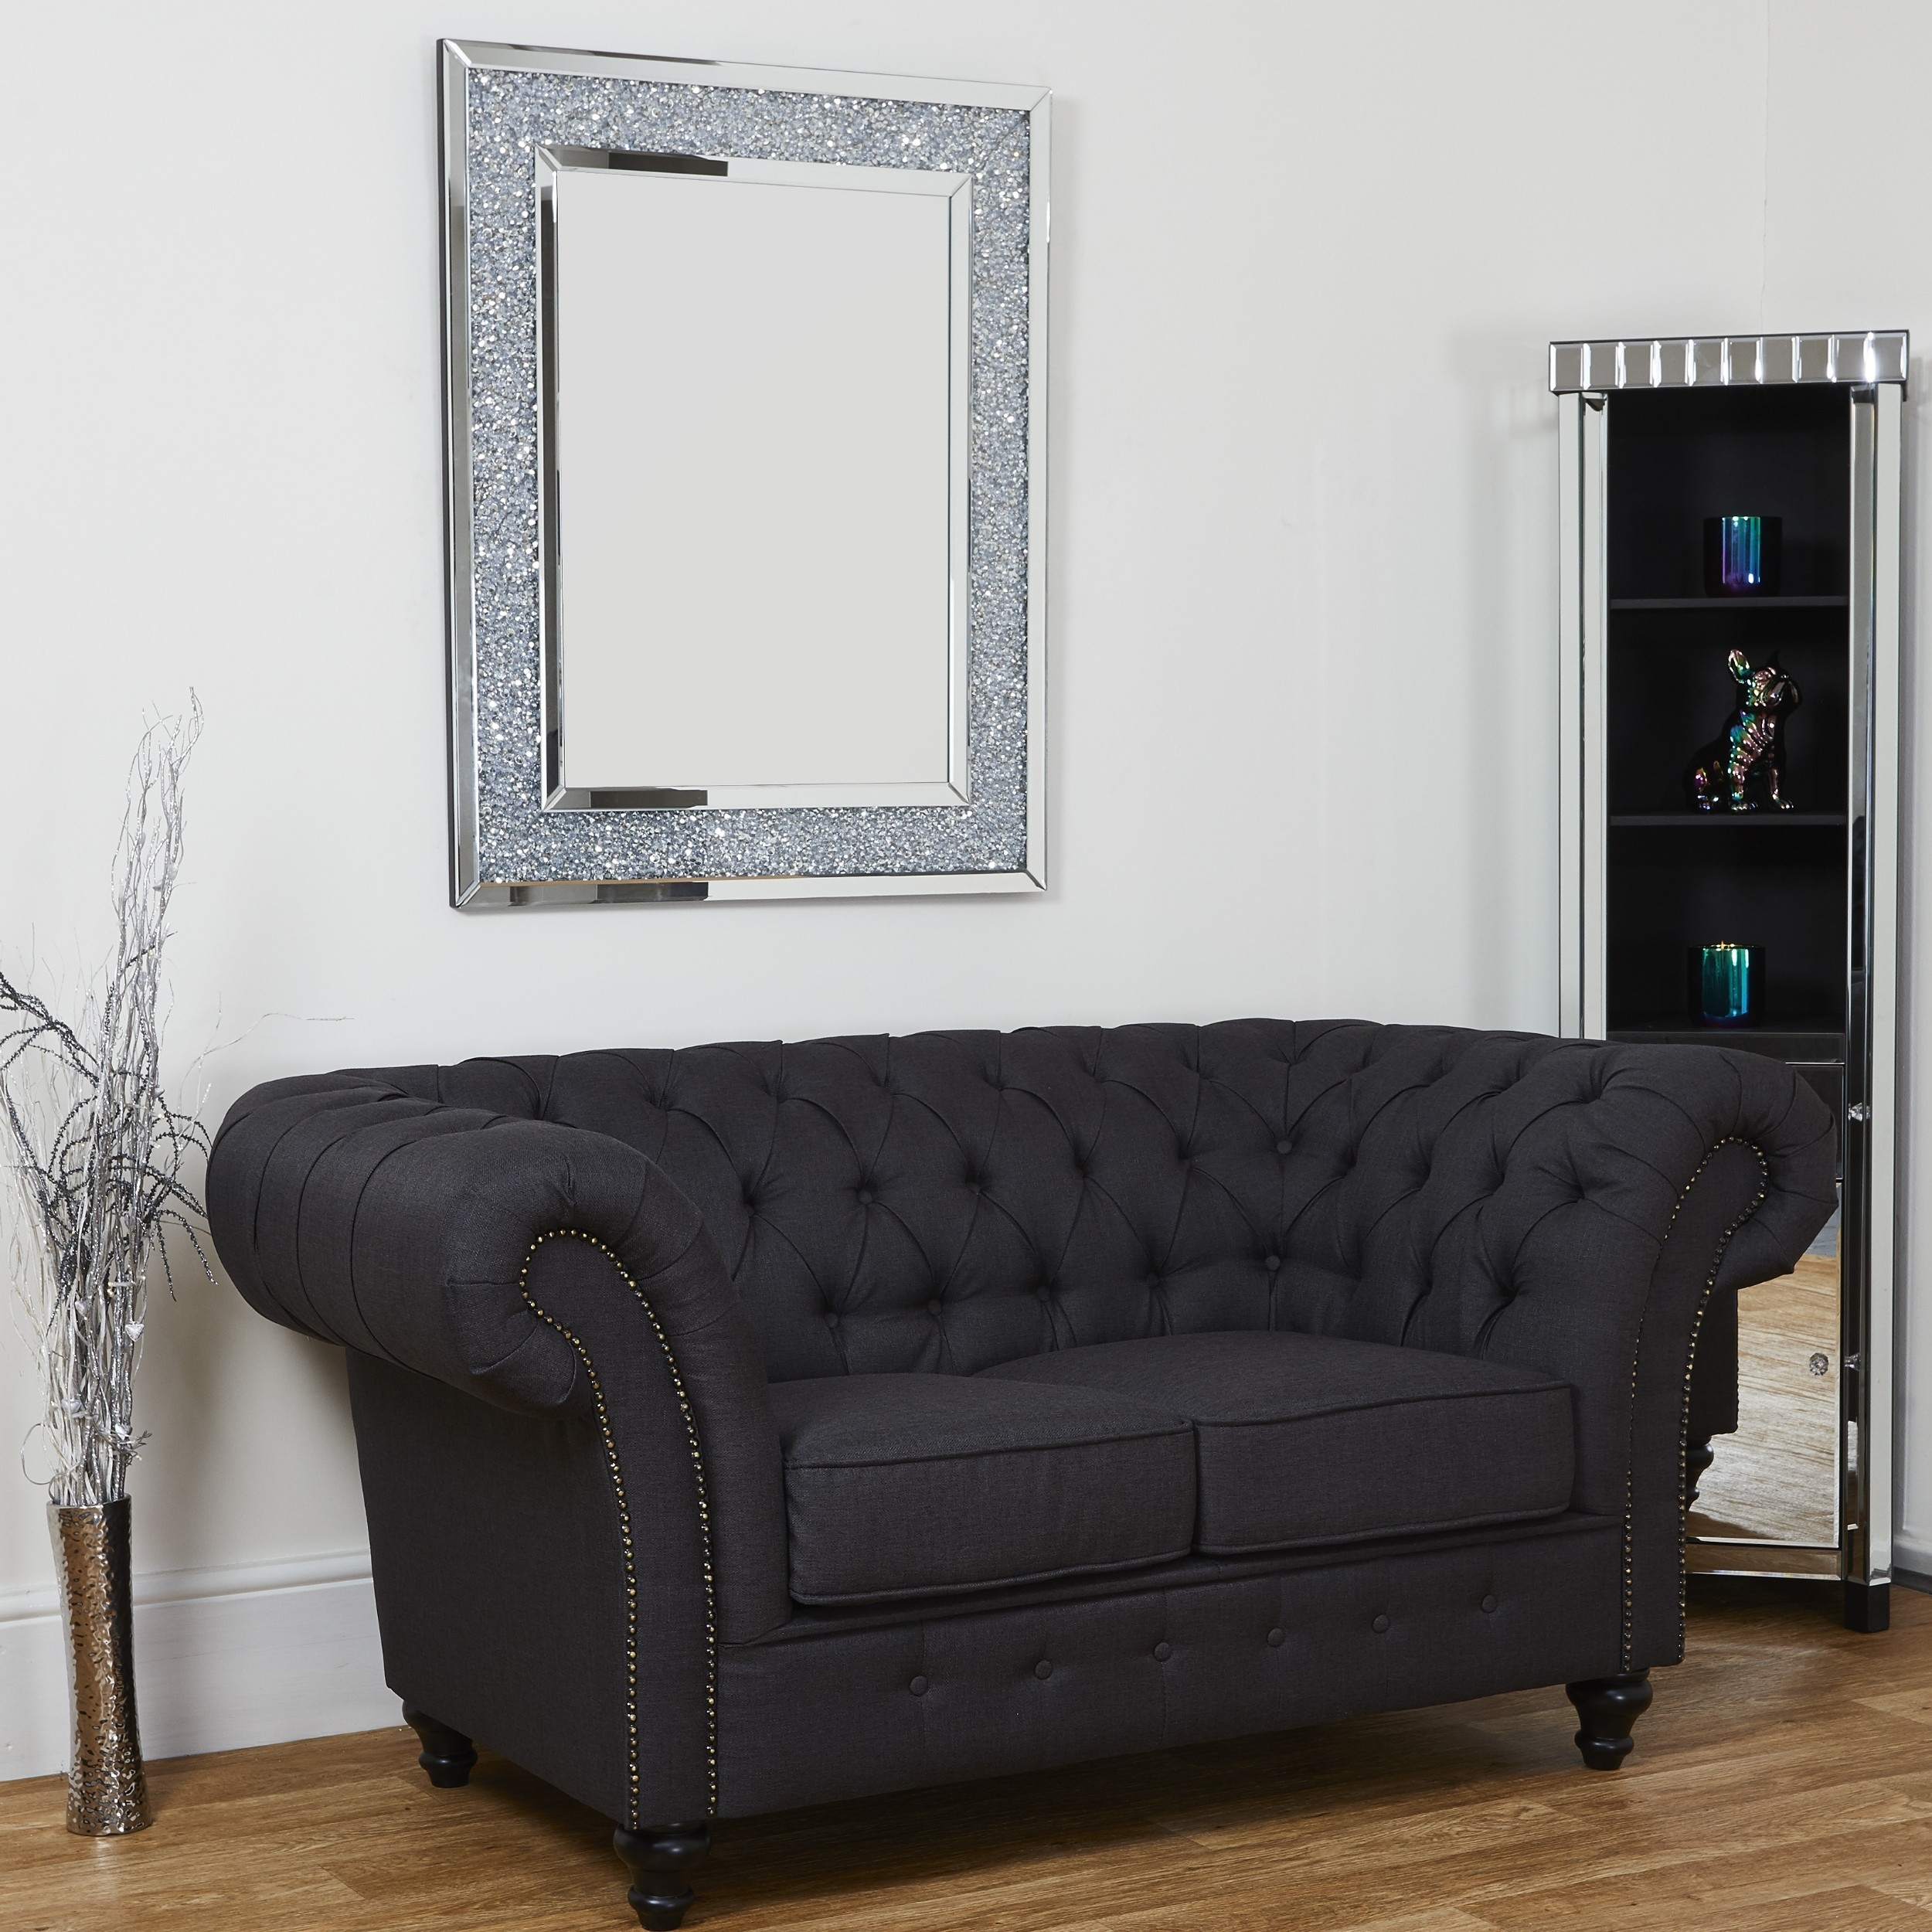 Charcoal Dark Grey Linen Chesterfield 3 Seater Sofa Abreo Home Furniture